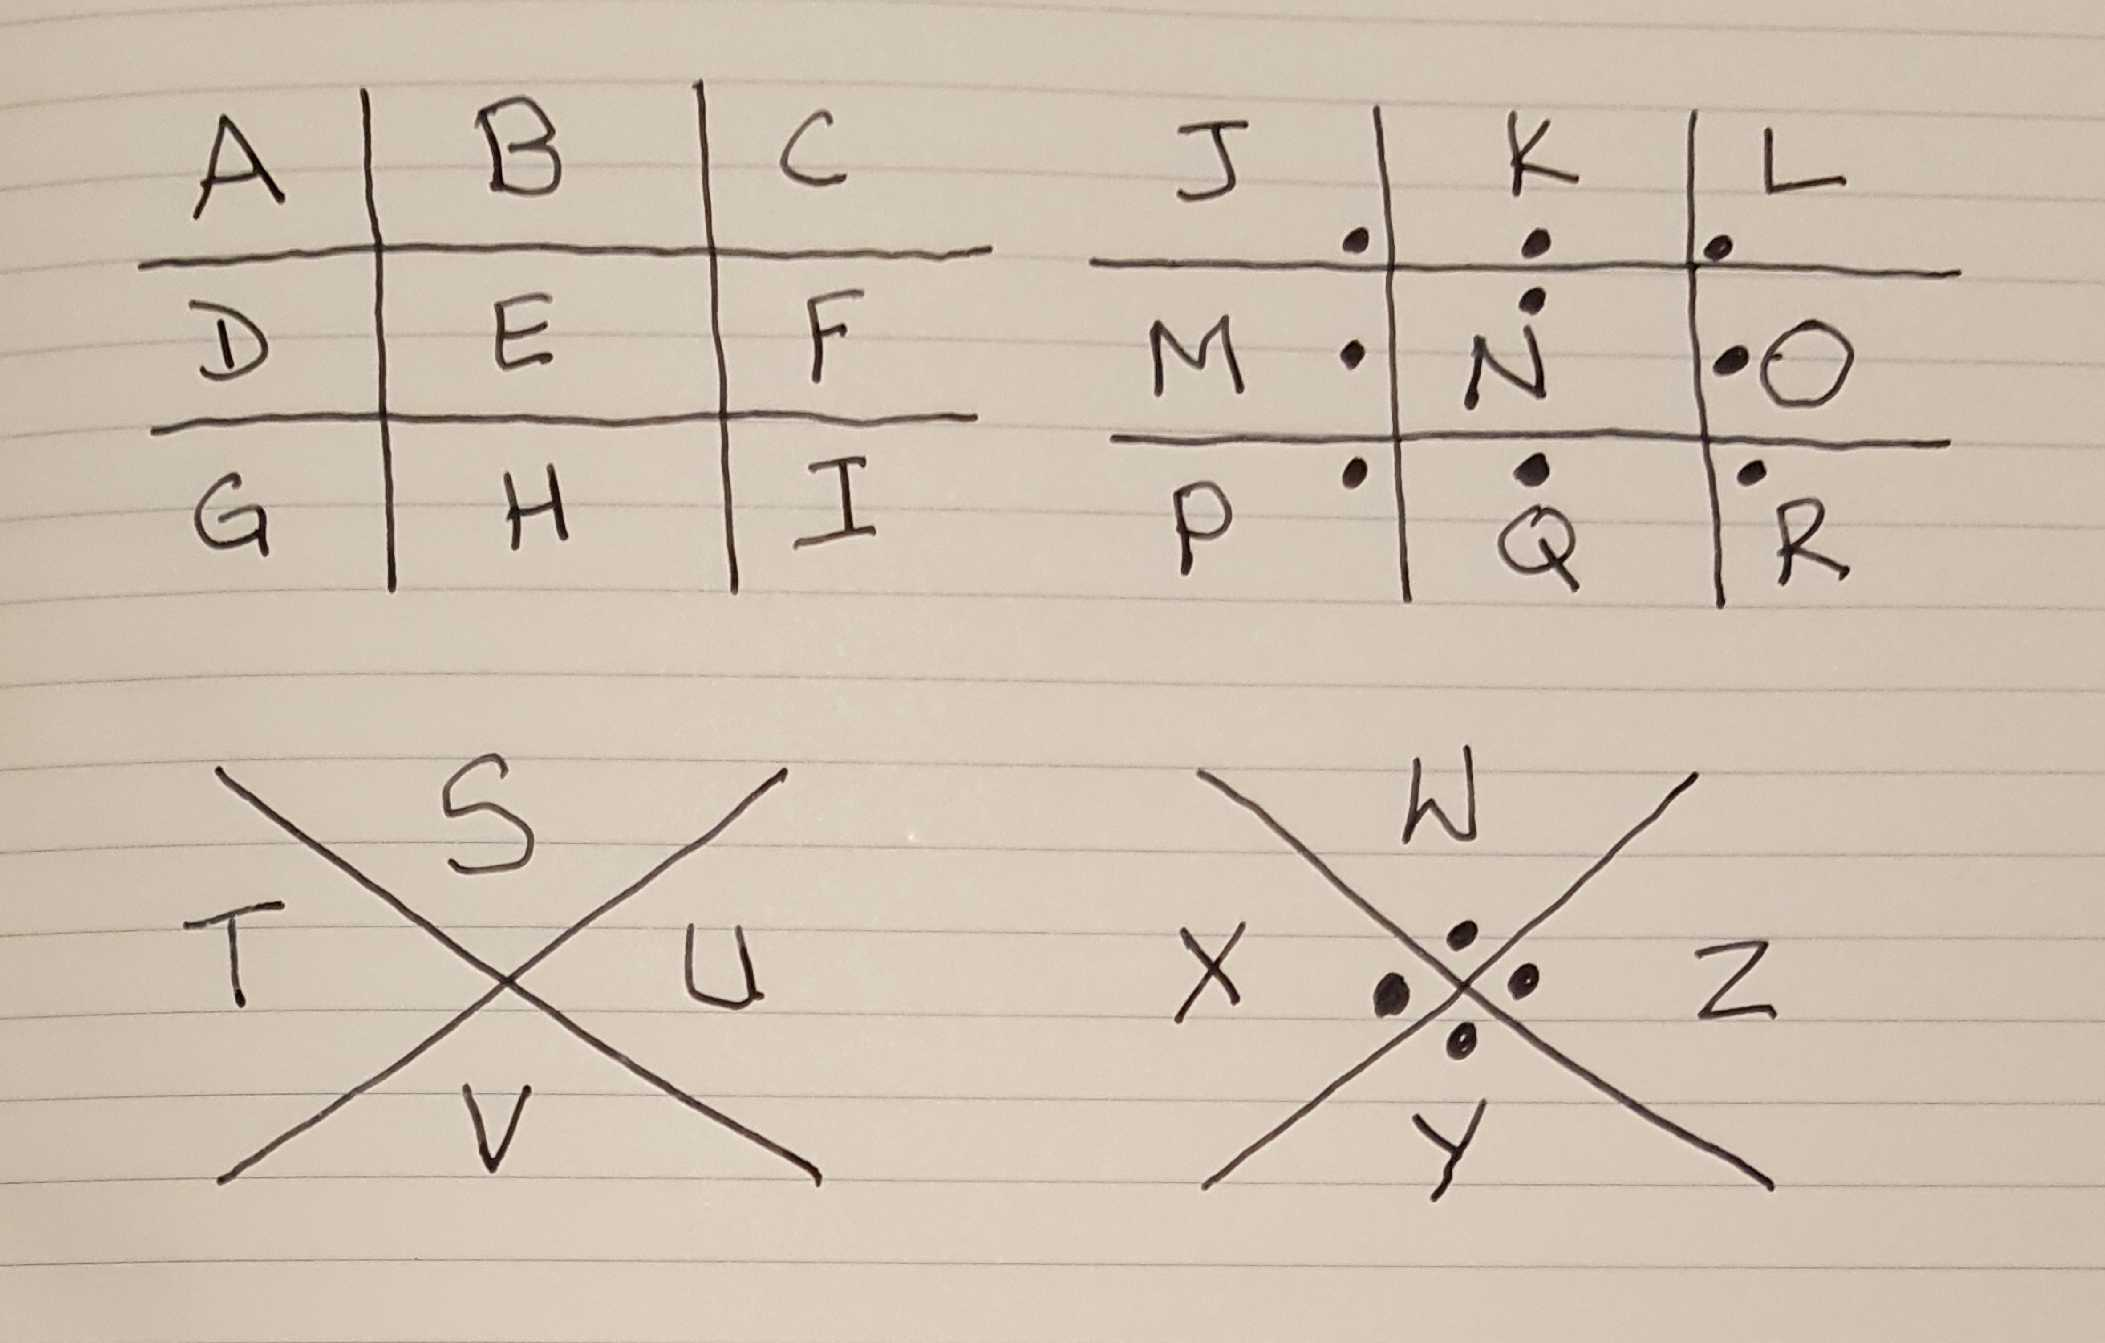 pigpen cipher key